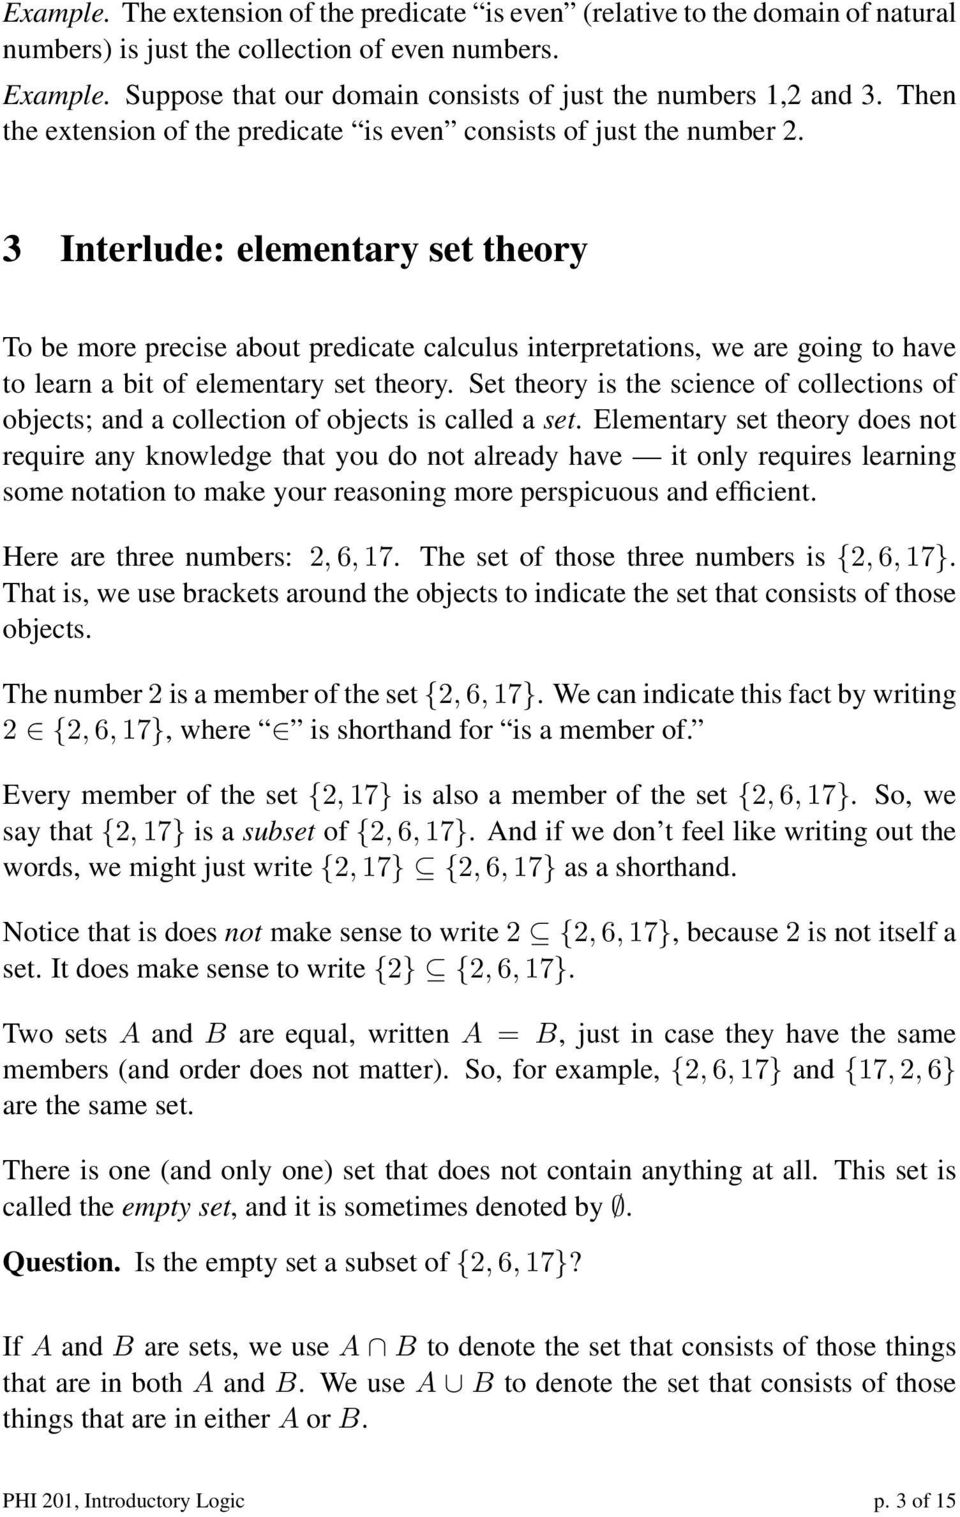 3 Interlude: elementary set theory To be more precise about predicate calculus interpretations, we are going to have to learn a bit of elementary set theory.